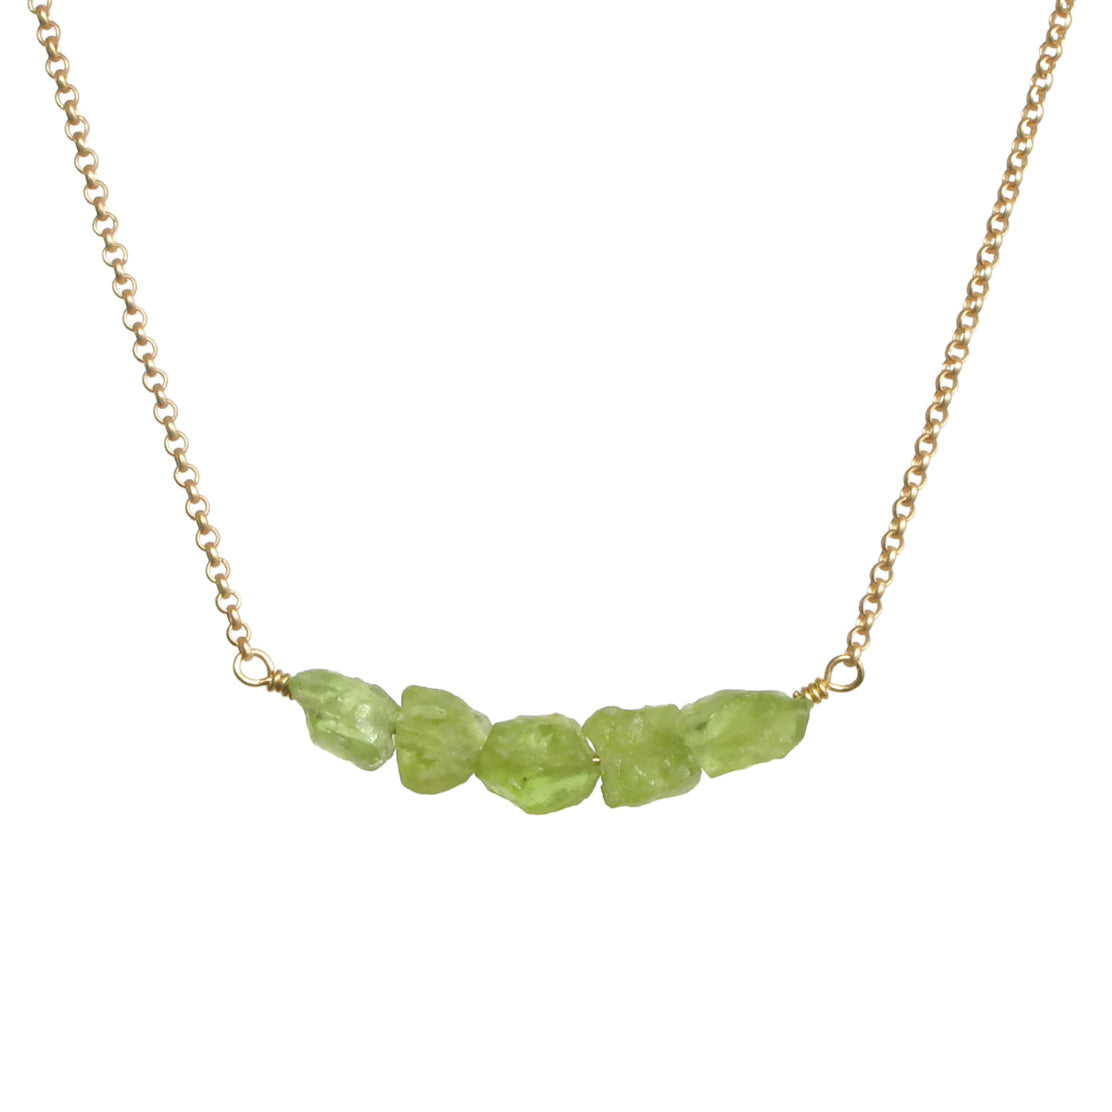 Donya Necklace - Peridot